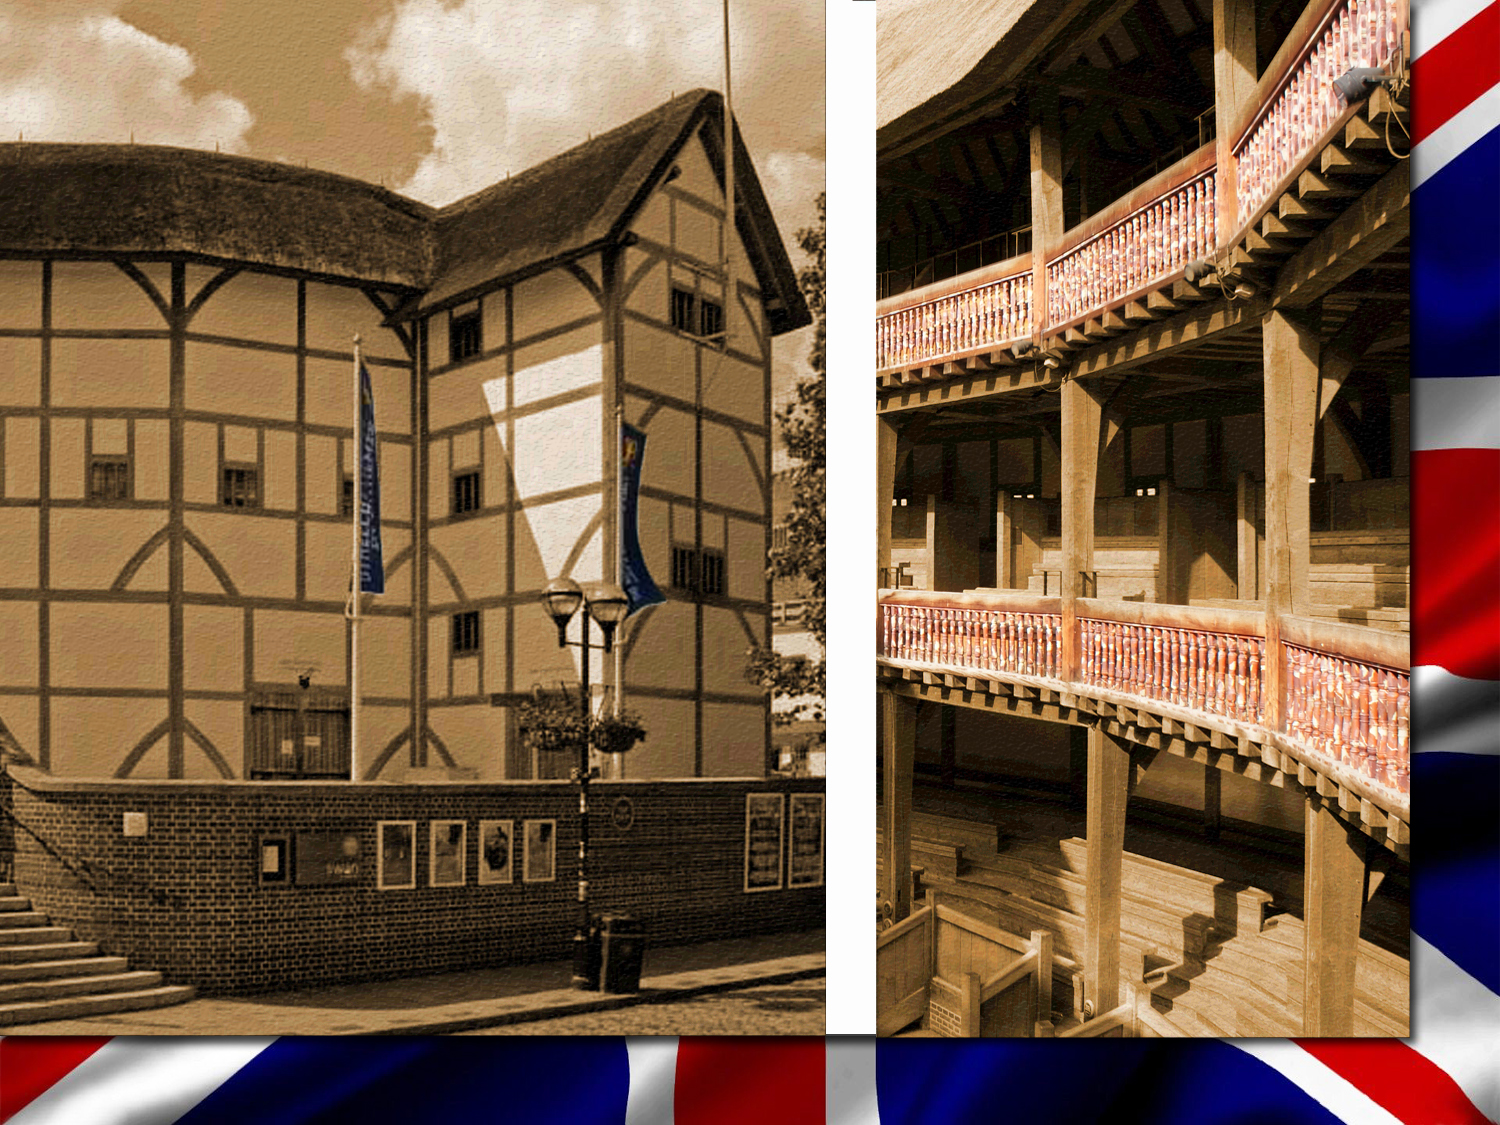 05_globe_szinhaz_globe_theatre_william_shakespeare_london_nagy-britannia_anglia_great_britain_england_utazas_europaba.jpg